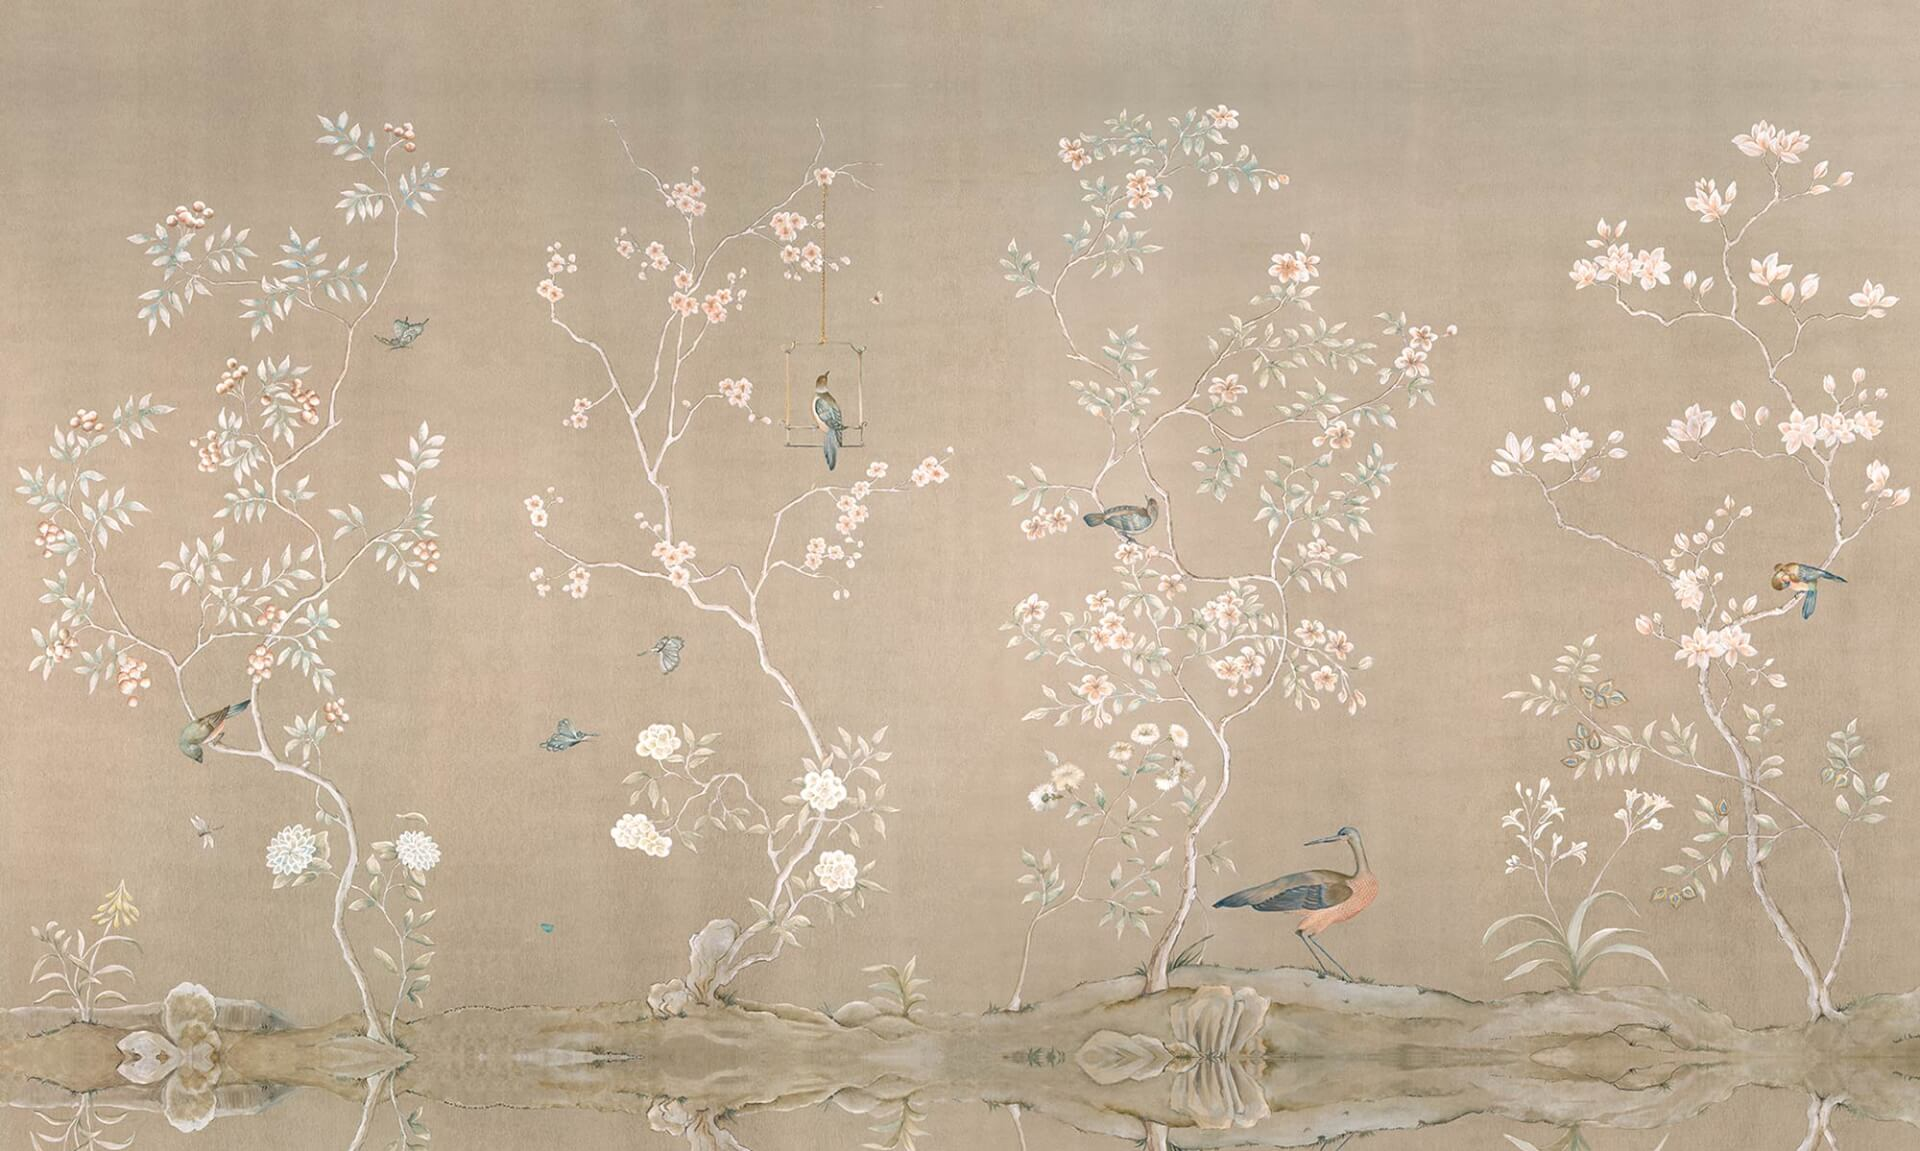 Chinoiserie Mu2017 Hand Painted Mural On Canvas Measuring 15 Feet Long